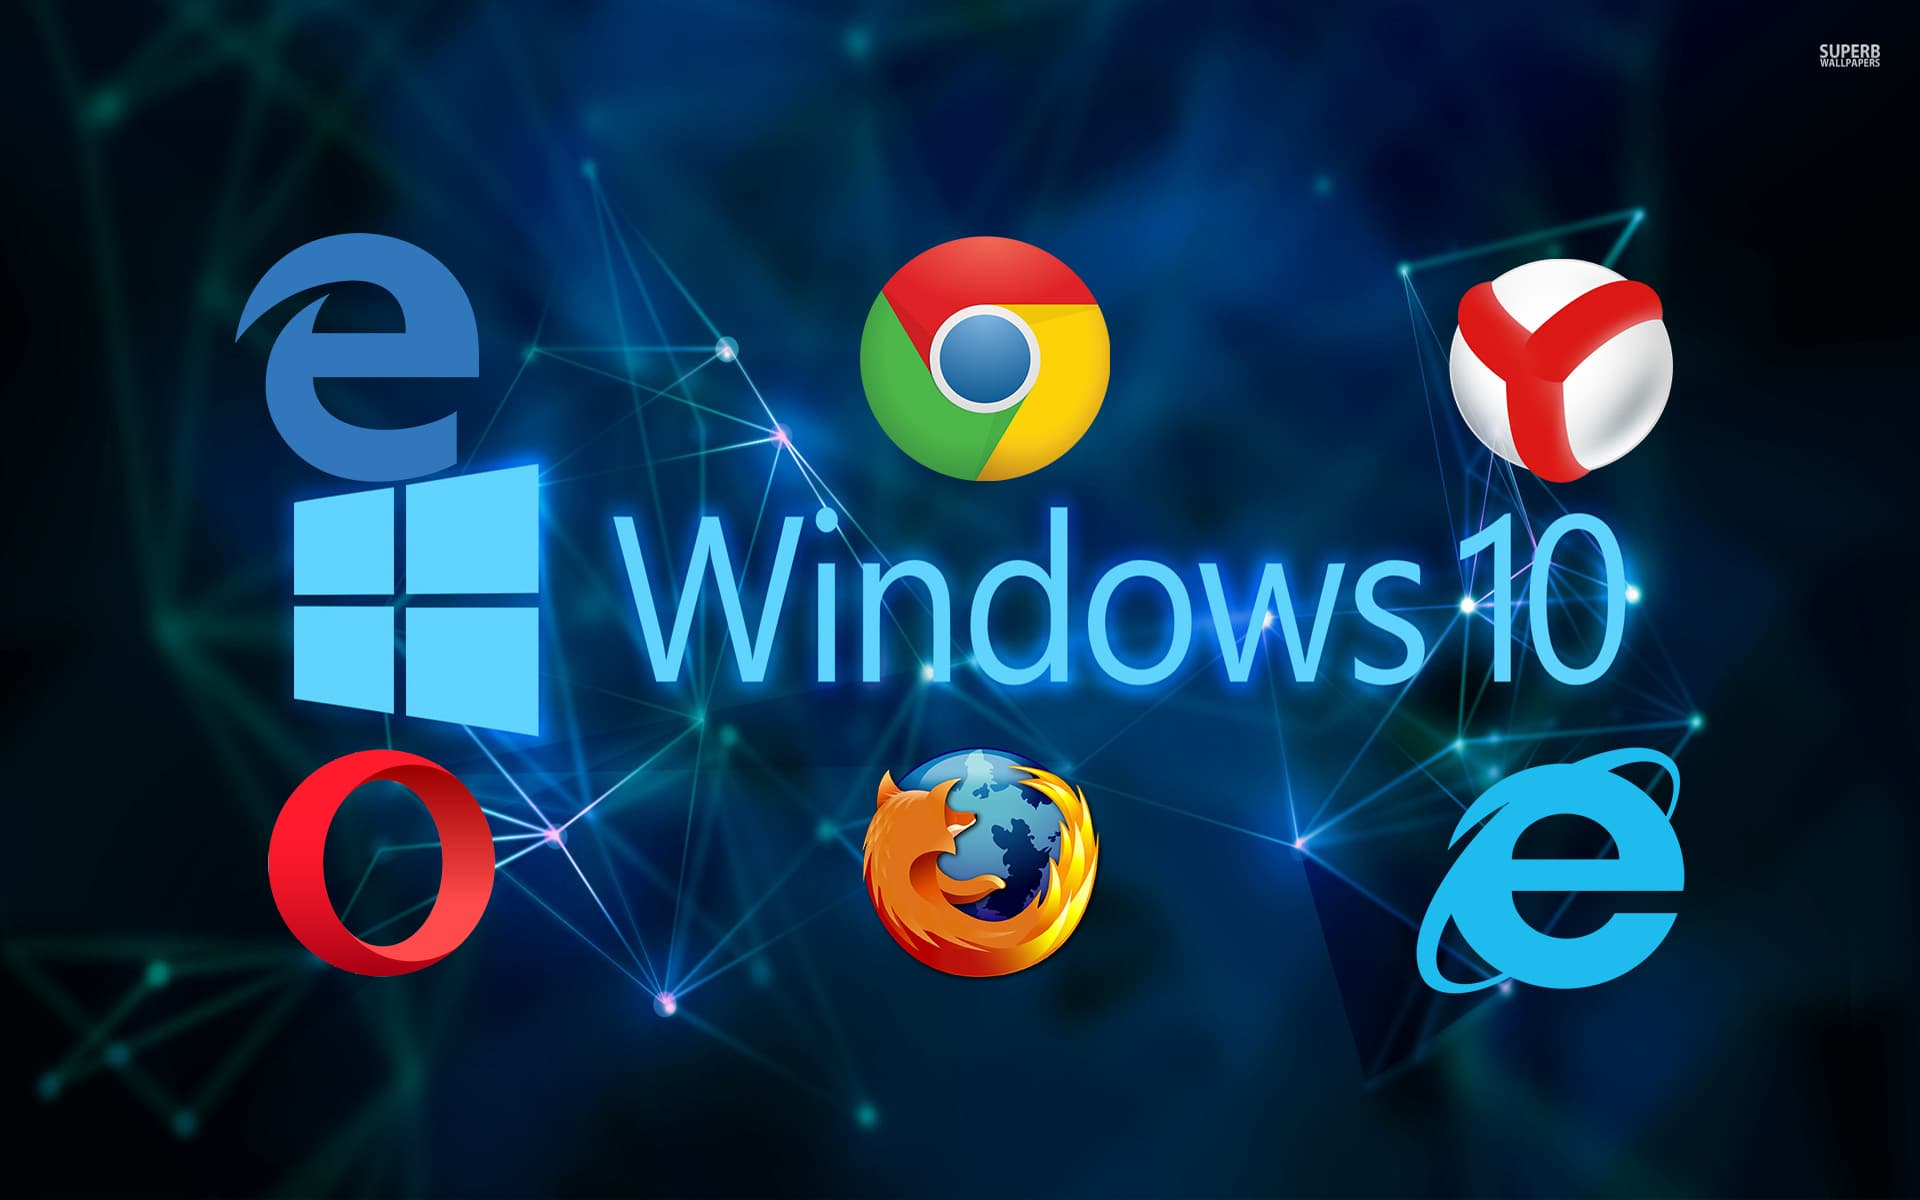 Браузеры Windows 10